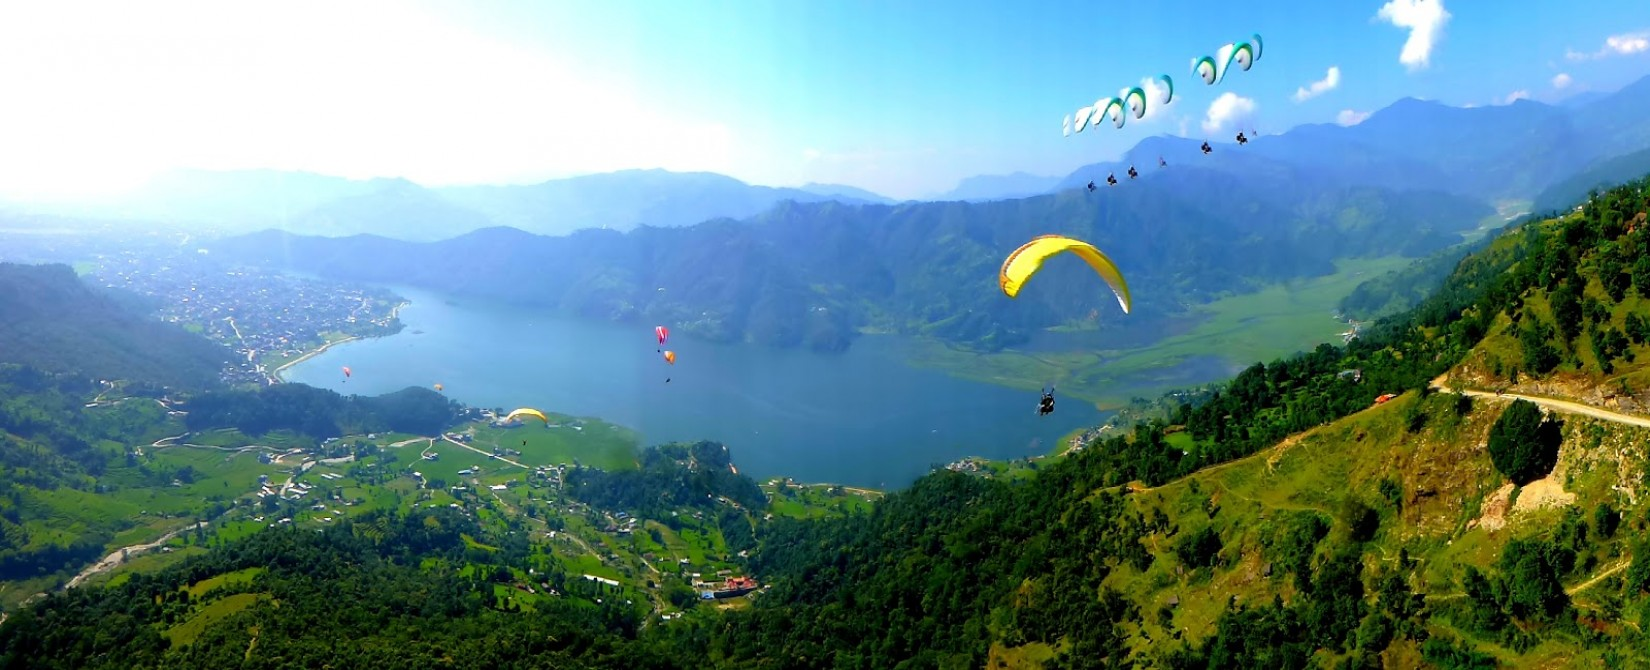 Best choice Sarangkot Paragliding takeover sport in Pokhara